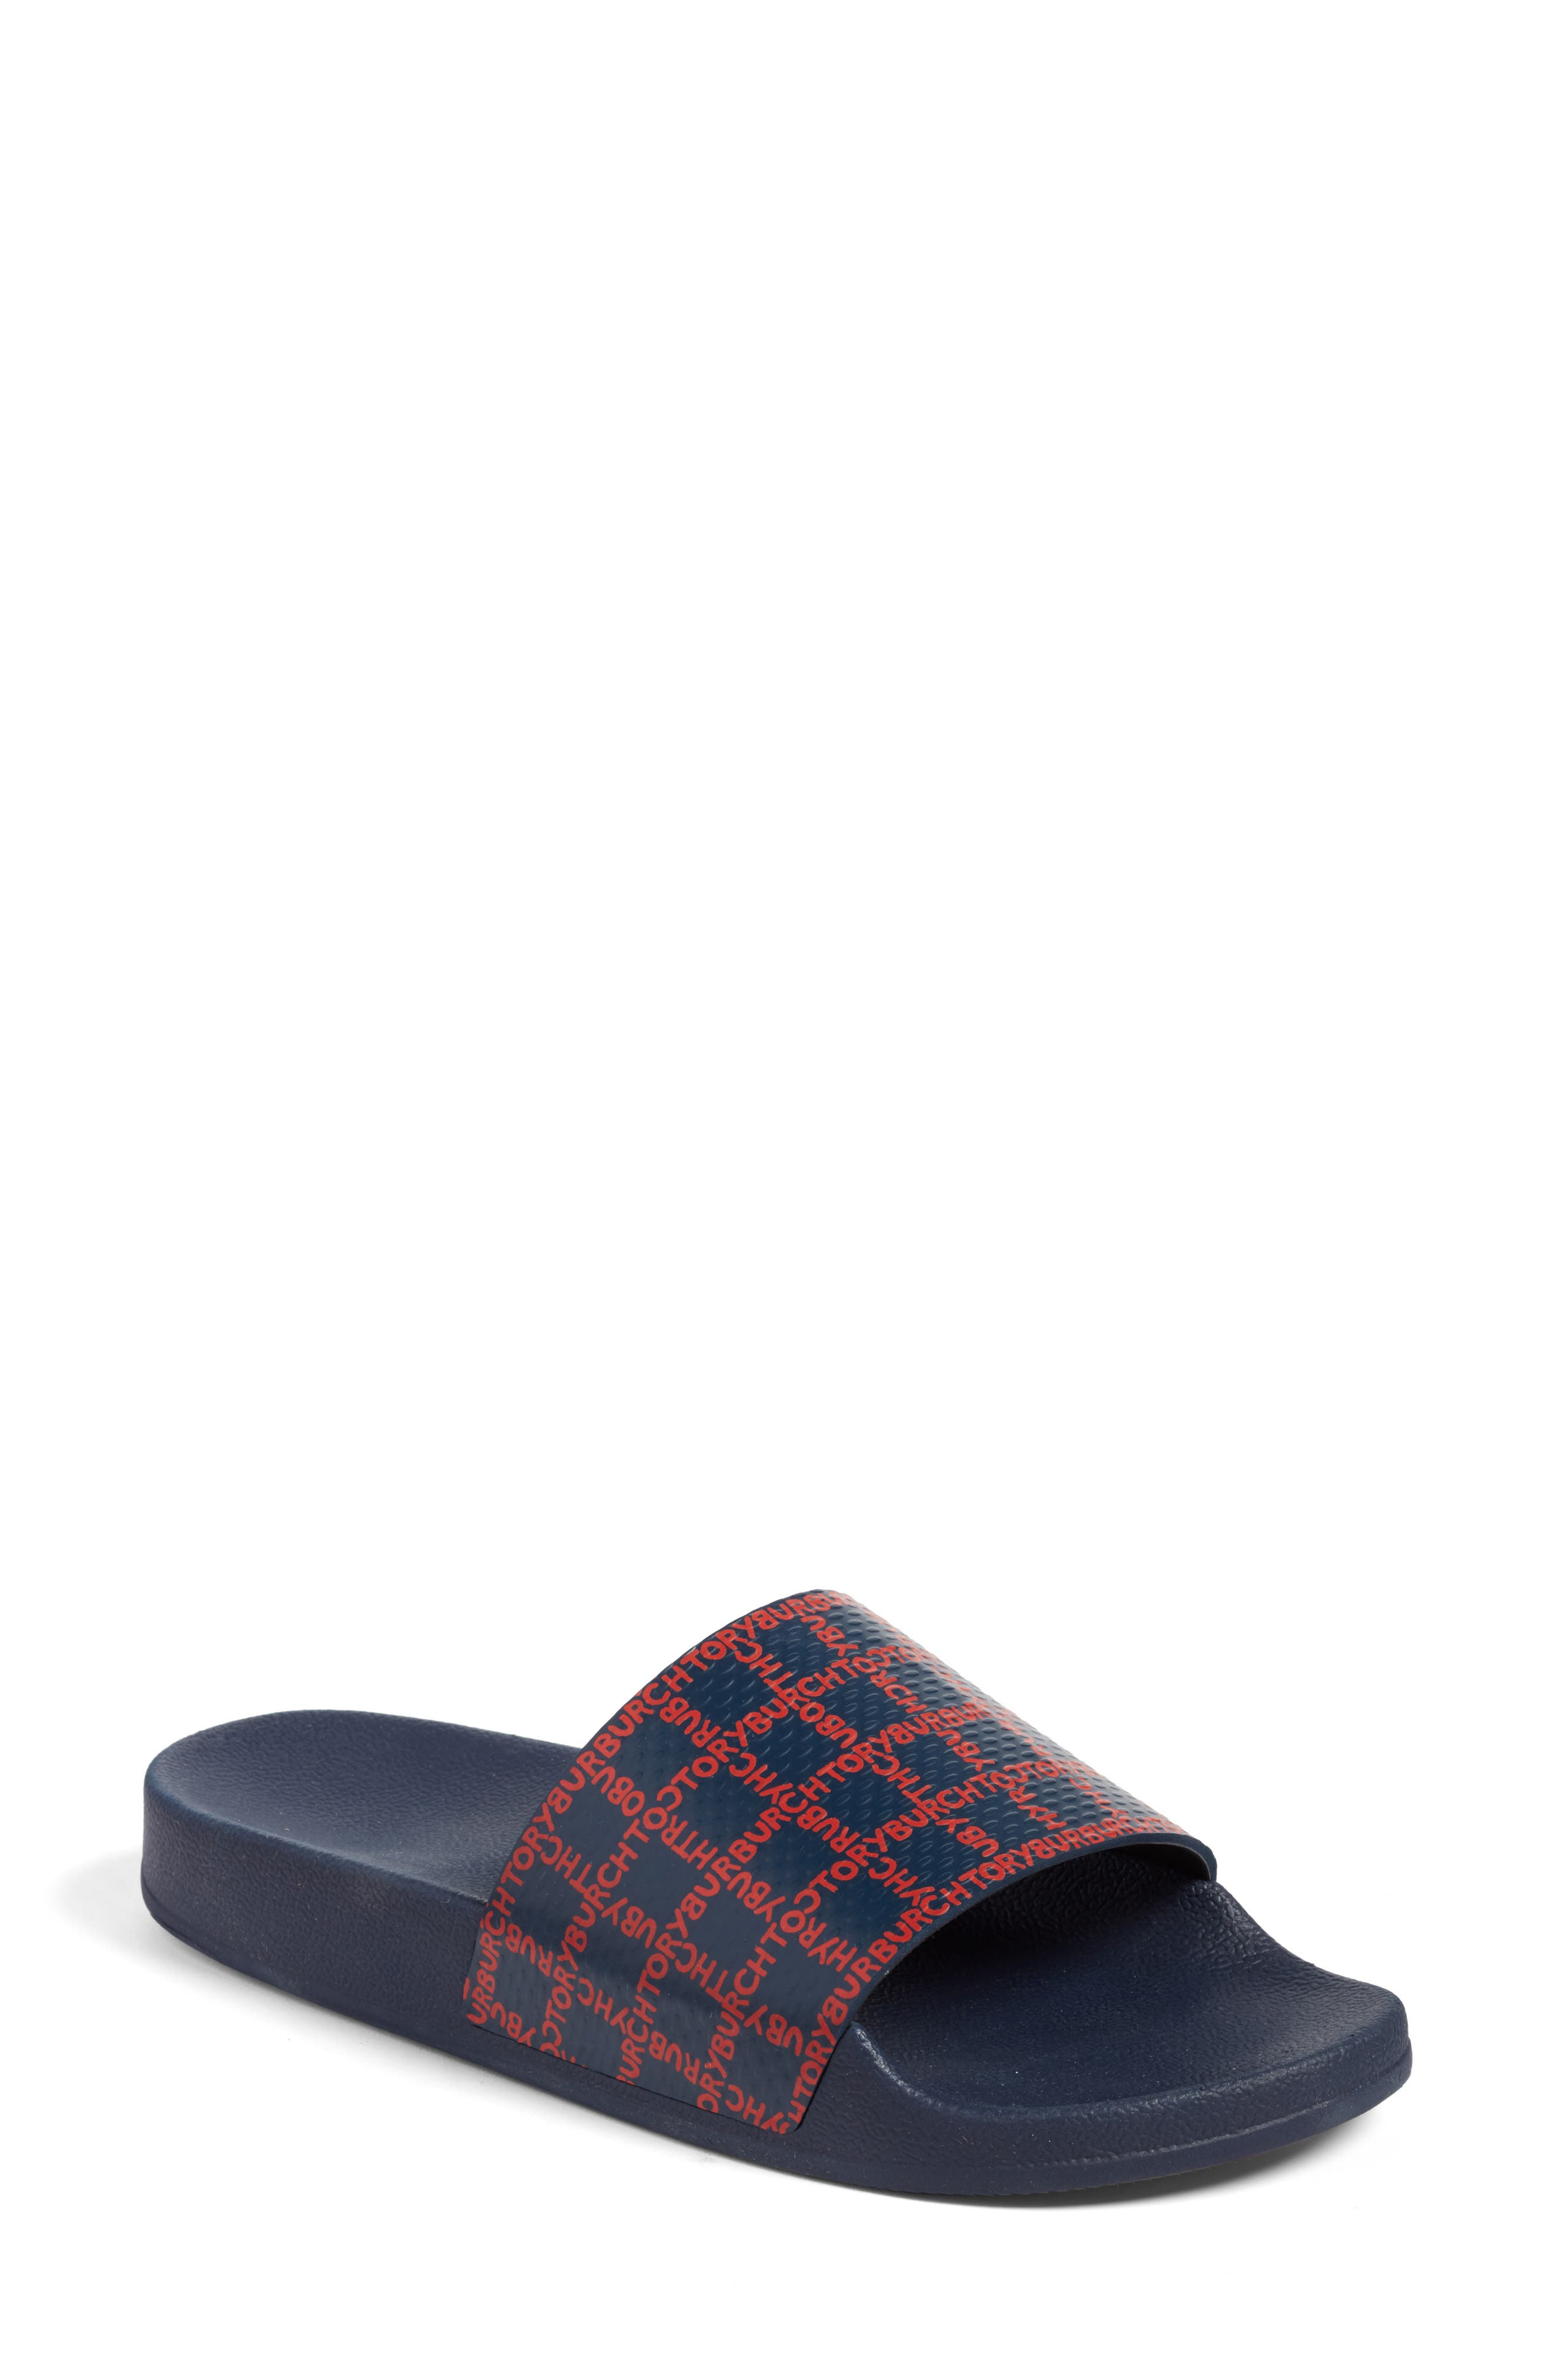 Stormy Slide Sandal,                             Main thumbnail 1, color,                             Tory Navy/ Tory Red